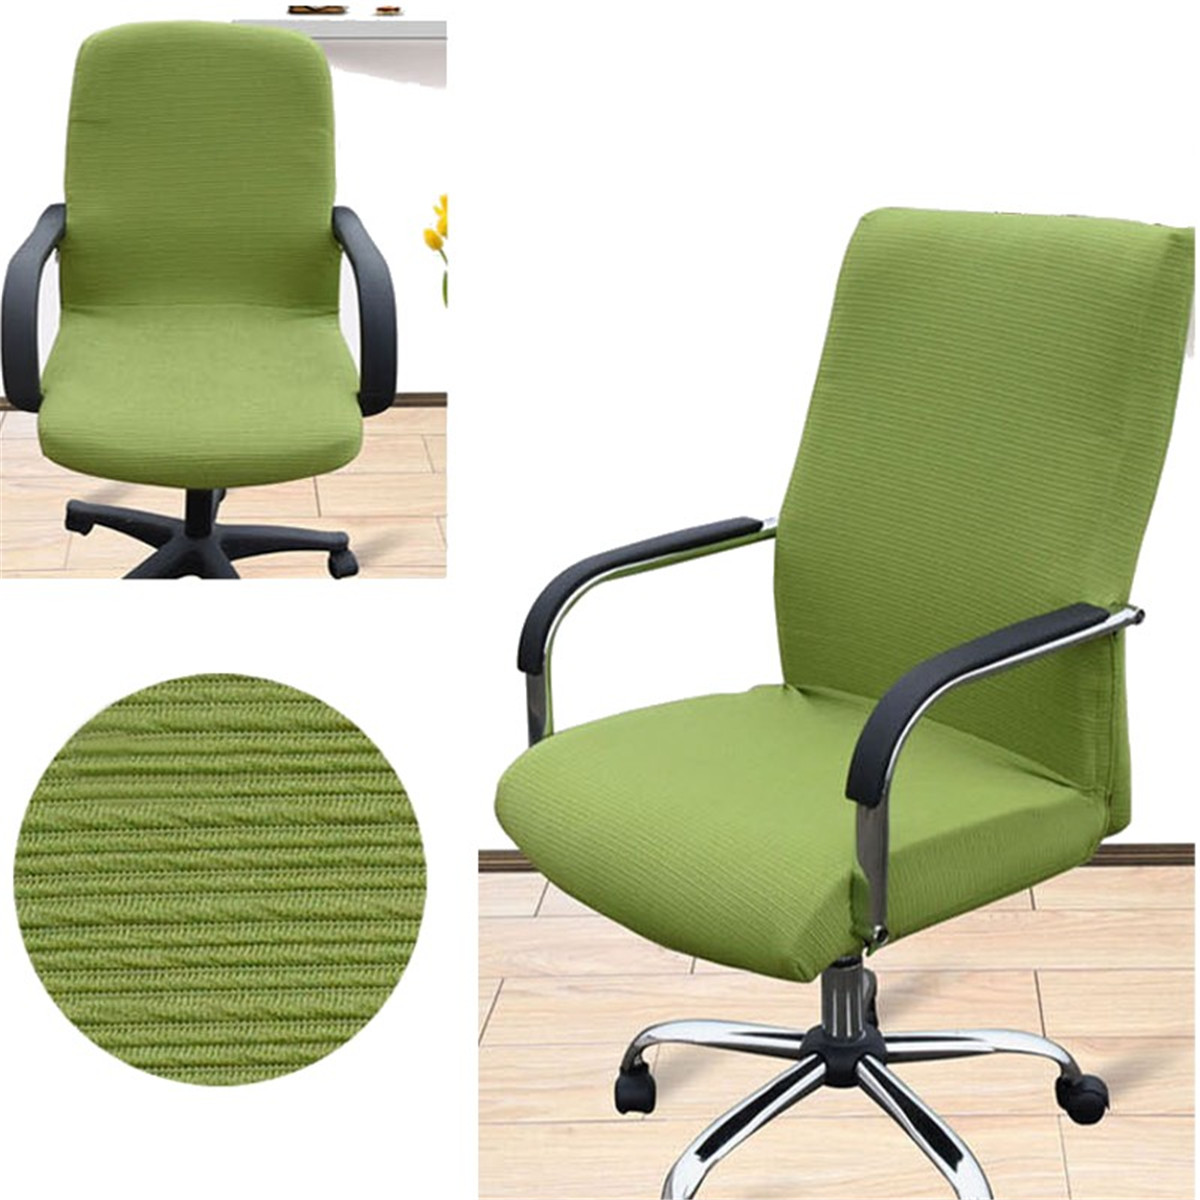 swivel chair covers where to buy in cape town stretch elastic office computer slip